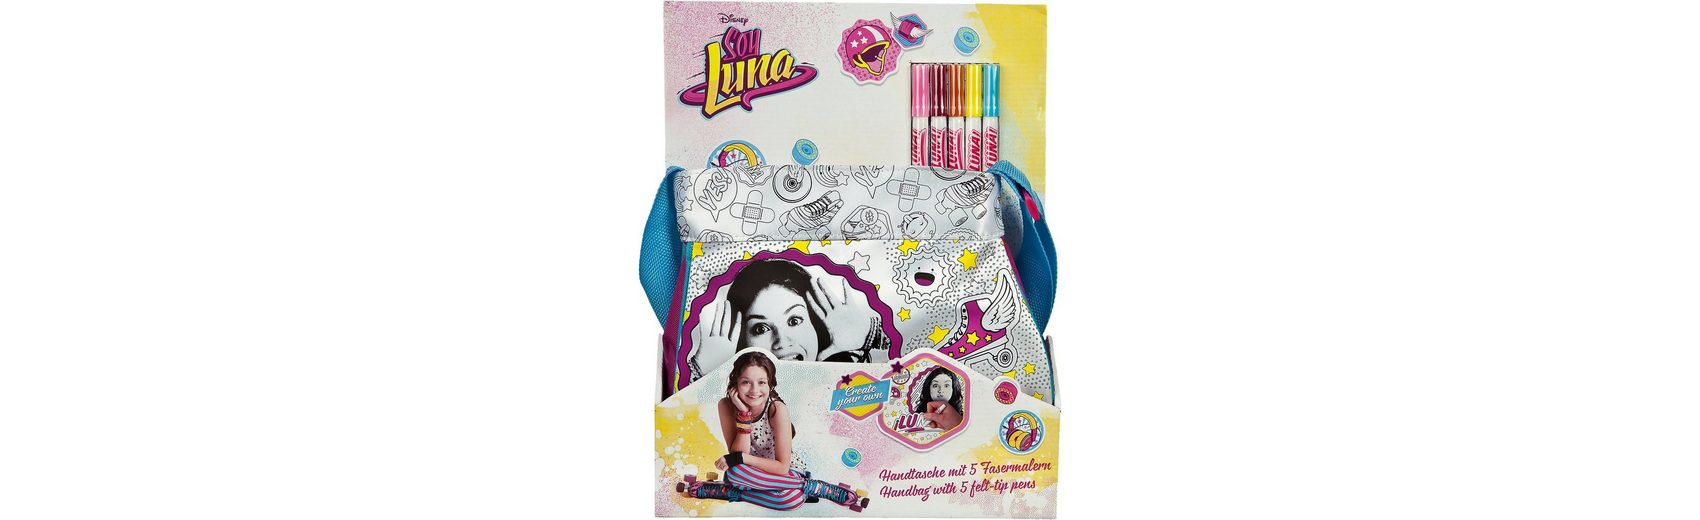 UNDERCOVER Create Your Own Shopping Bag - Soy Luna